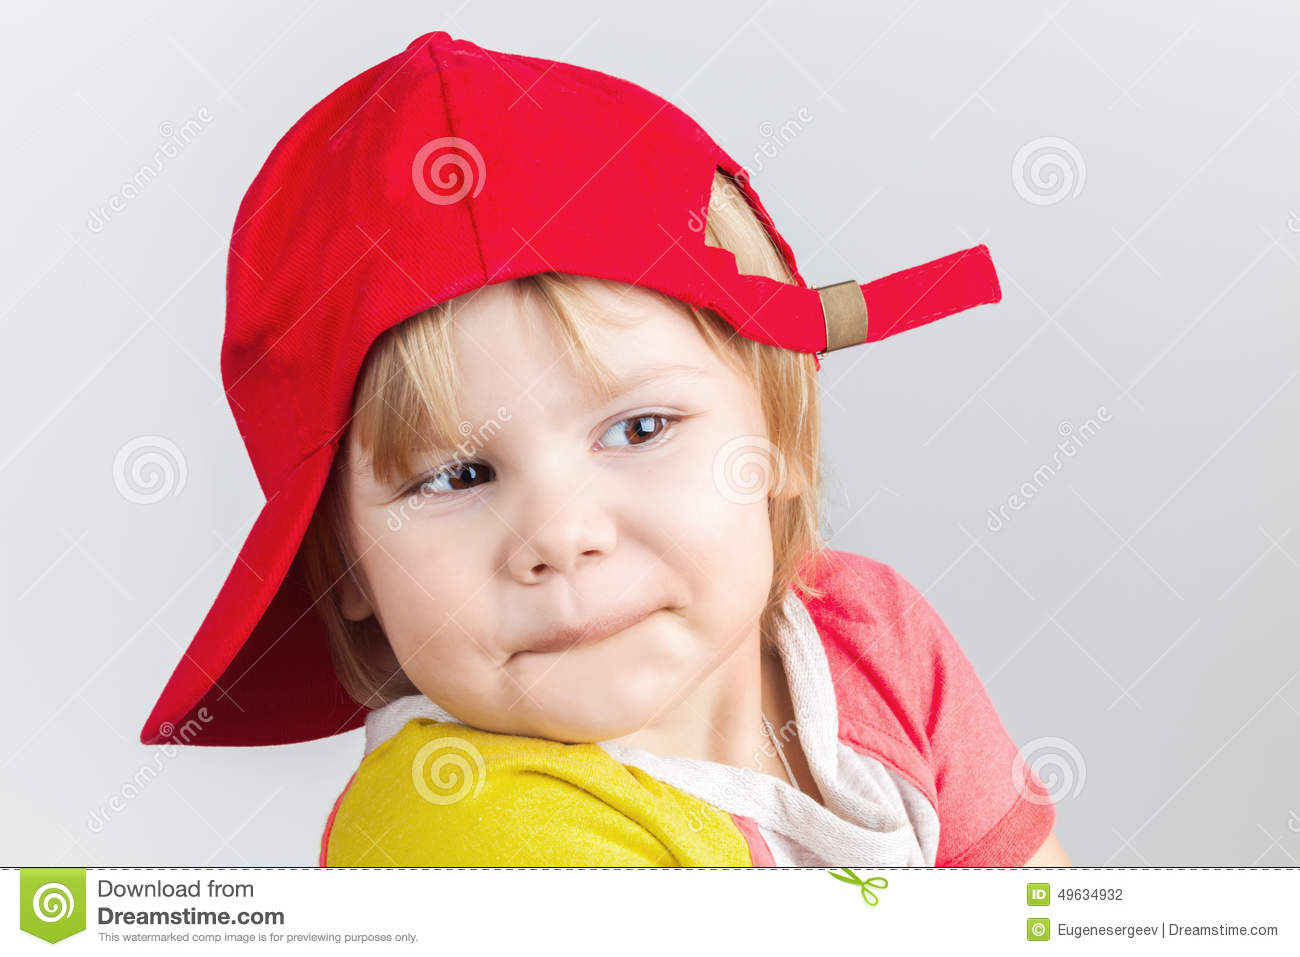 388321499 Funny Smiling Baby Girl In Red Baseball Cap Stock Photo - Image of ...